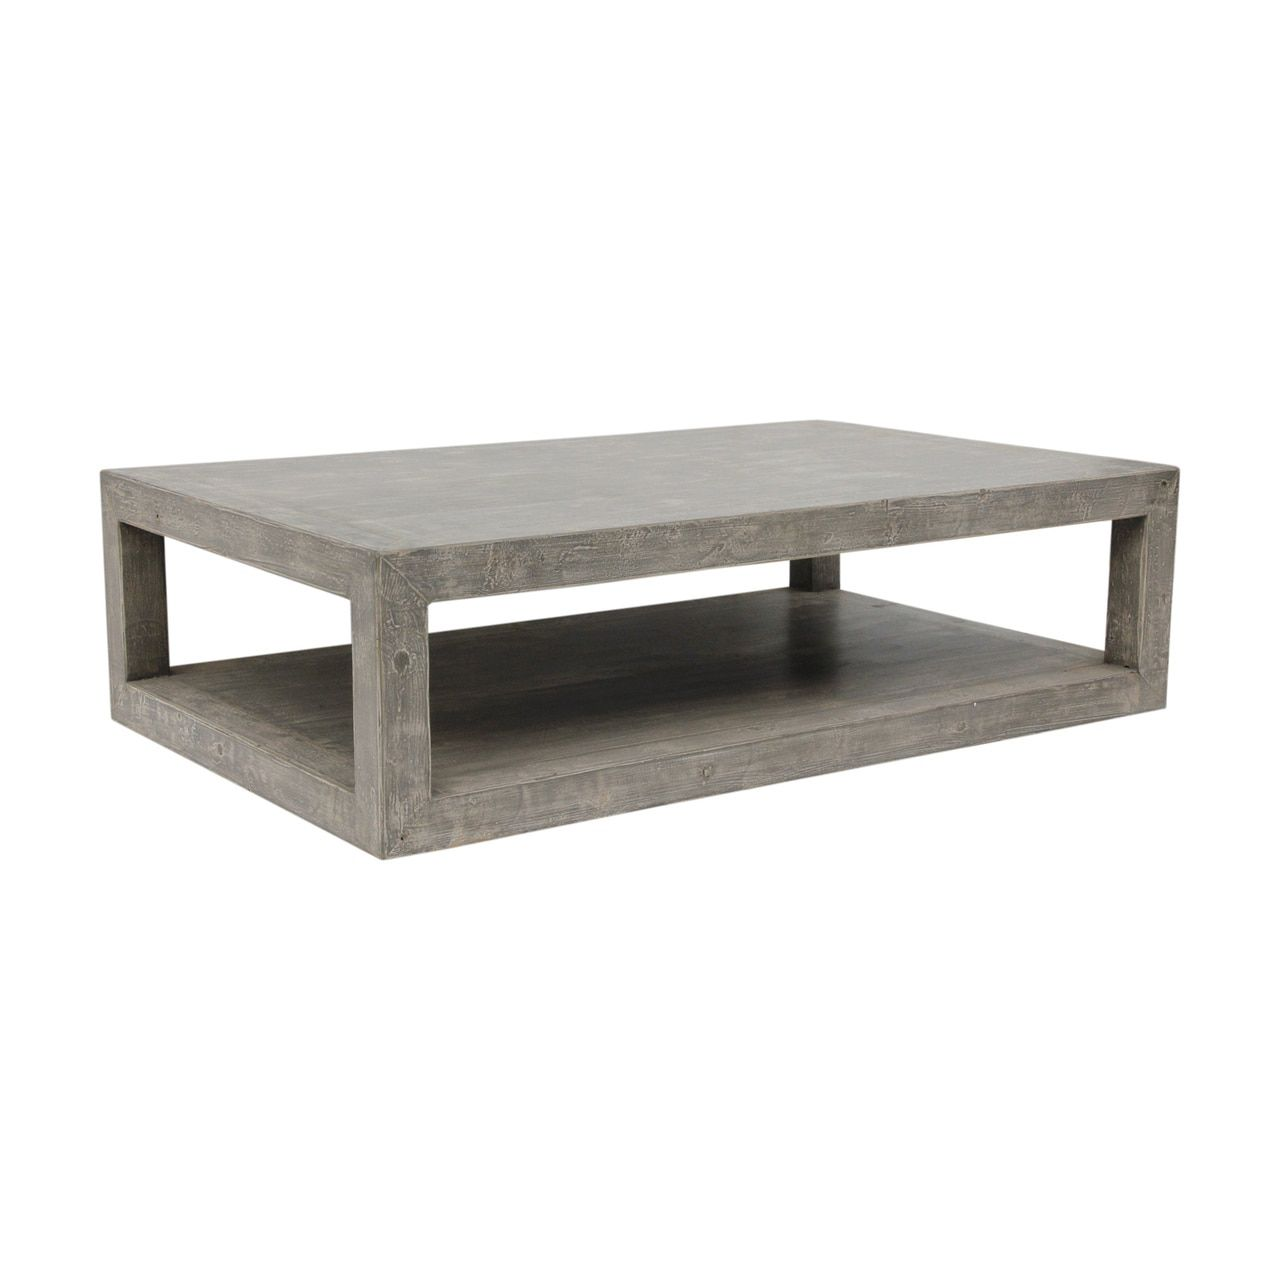 Peking Grand Framed Coffee Table Weathered Gray Wash Pre Order Only Lead Time 8 10 Weeks In 2021 Coffee Table Solid Wood Flooring Coffee Table Square [ 1280 x 1280 Pixel ]